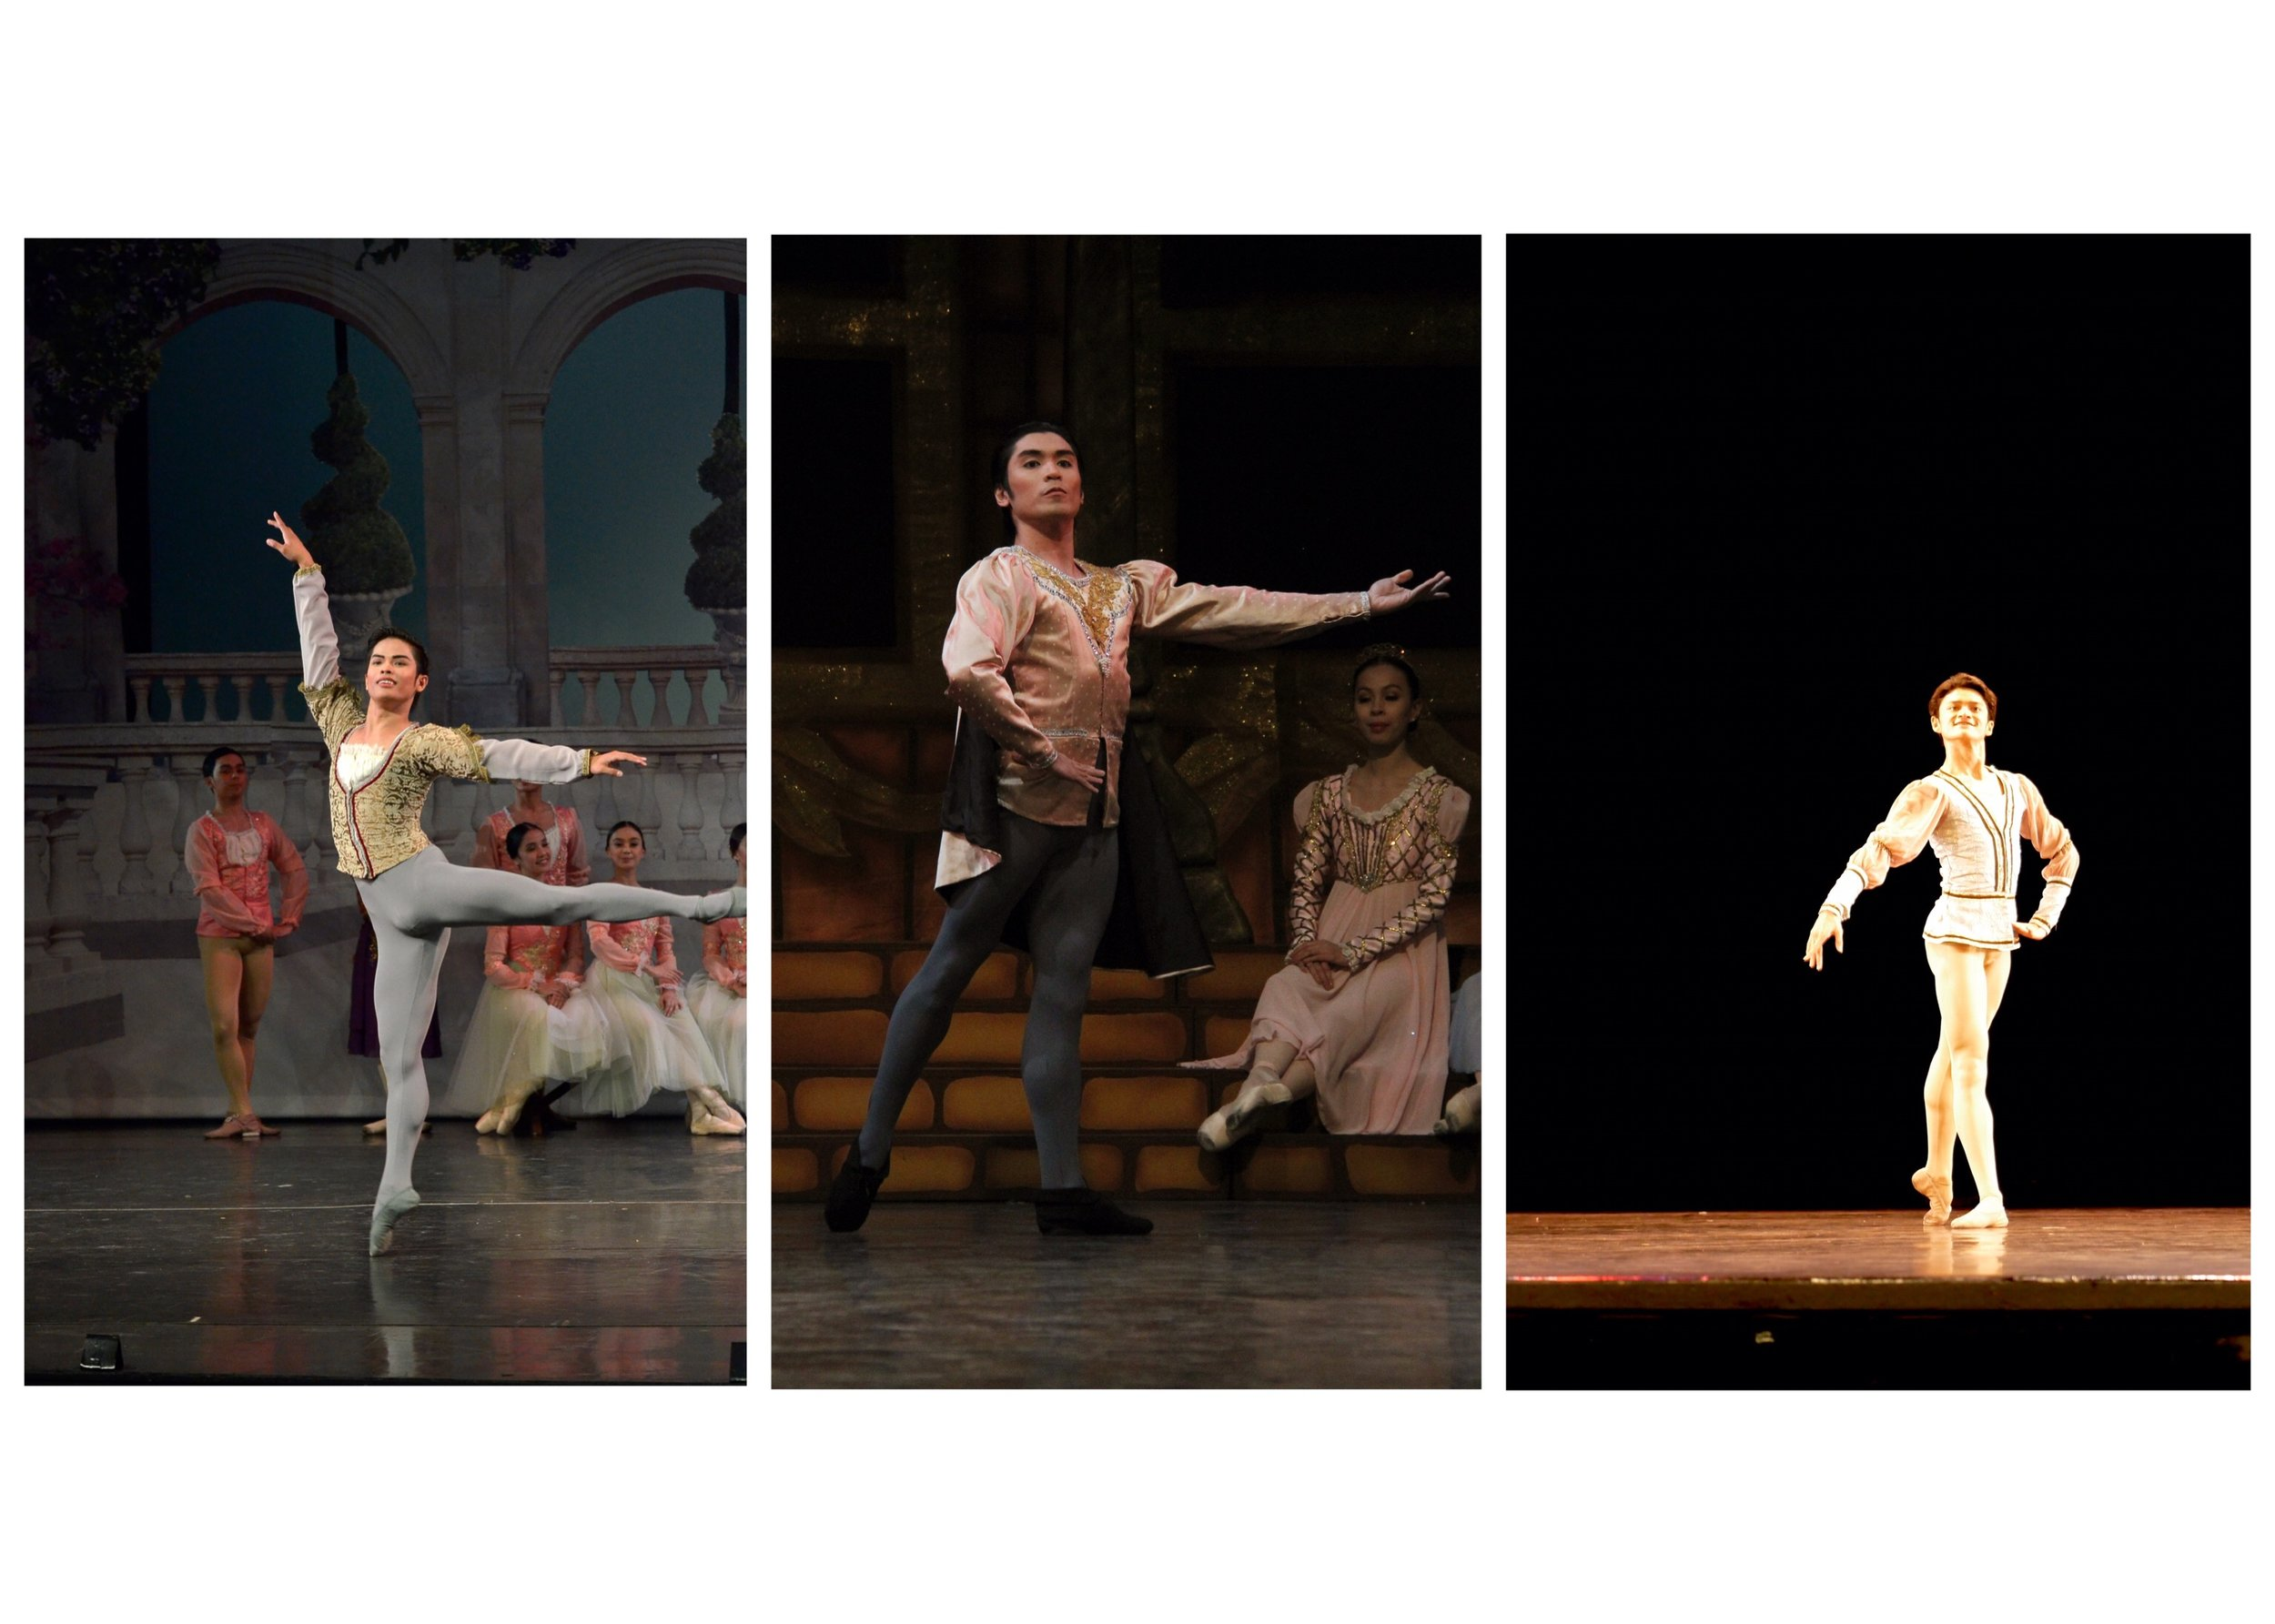 The three Princes: principal dancers Elpidio Magat Jr. and Romeo Peralta Jr., and soloist Joshua Enciso. Photos by Ocs Alvarez and Giselle P. Kasilag